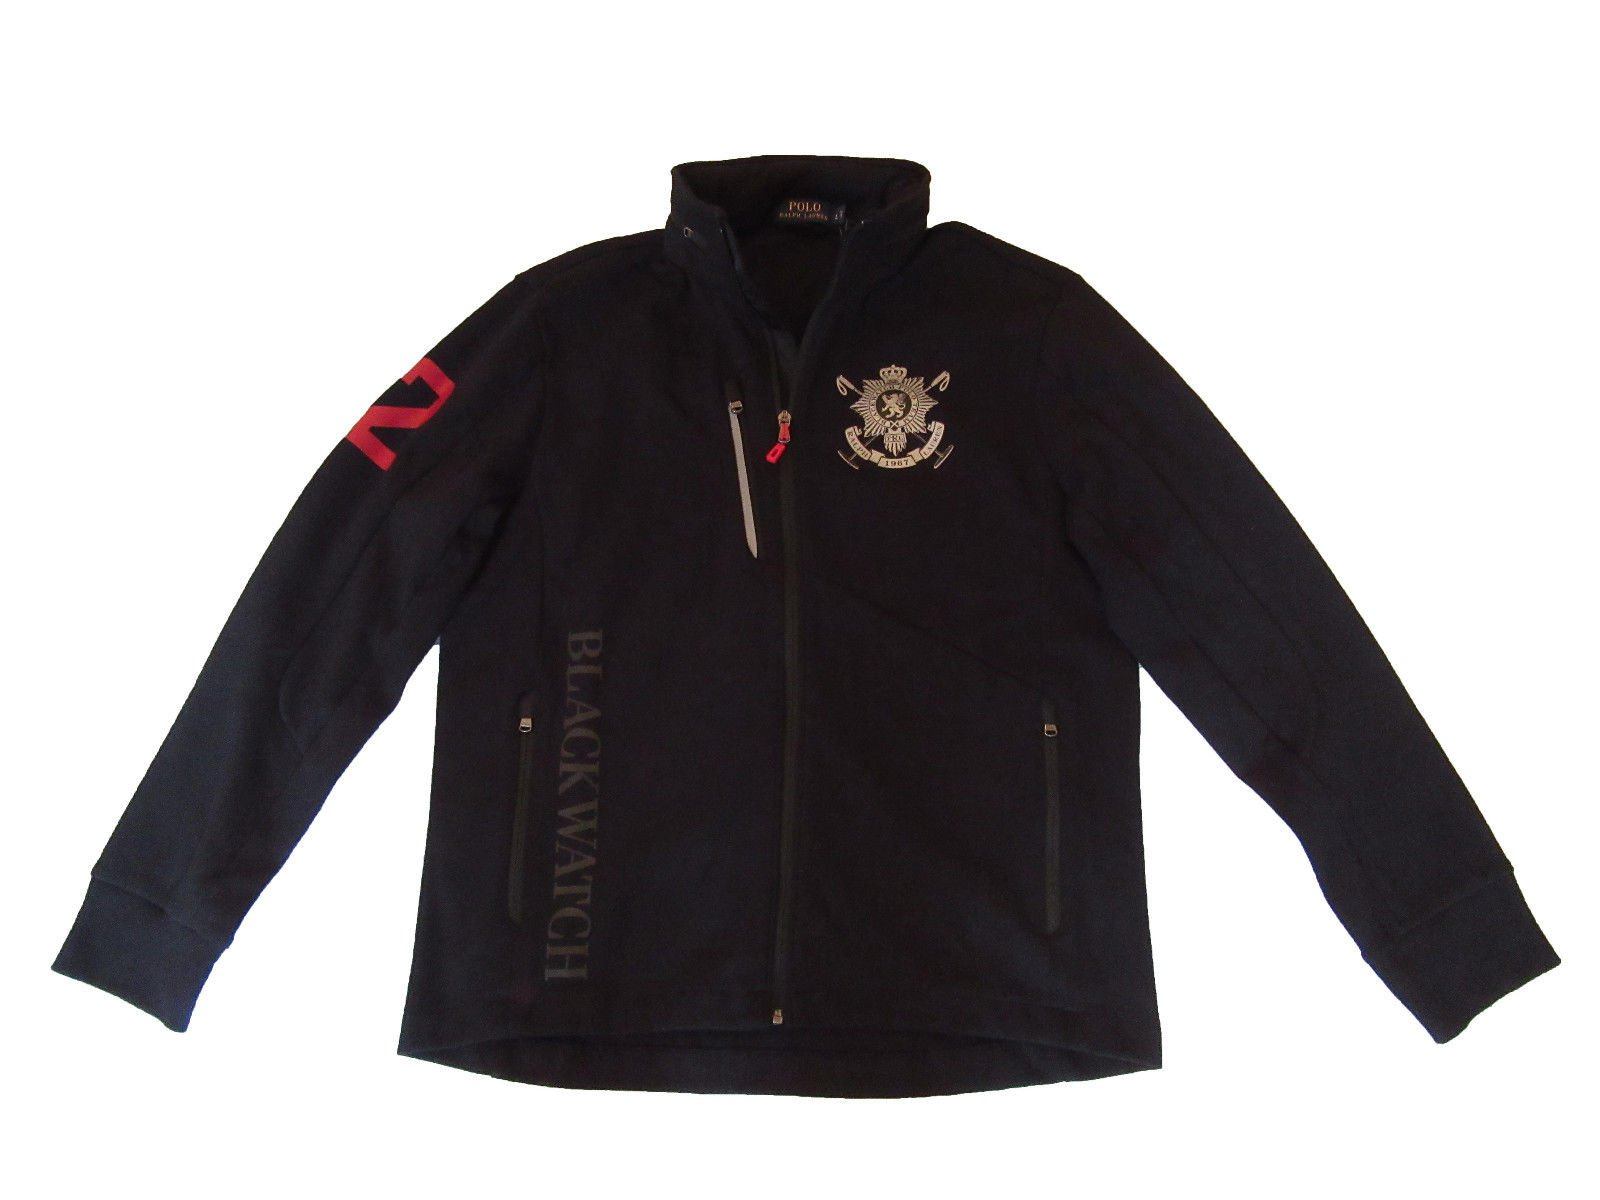 Ralph Lauren Polo Men Black Watch Pieced Track Jacket (Large) by RALPH LAUREN